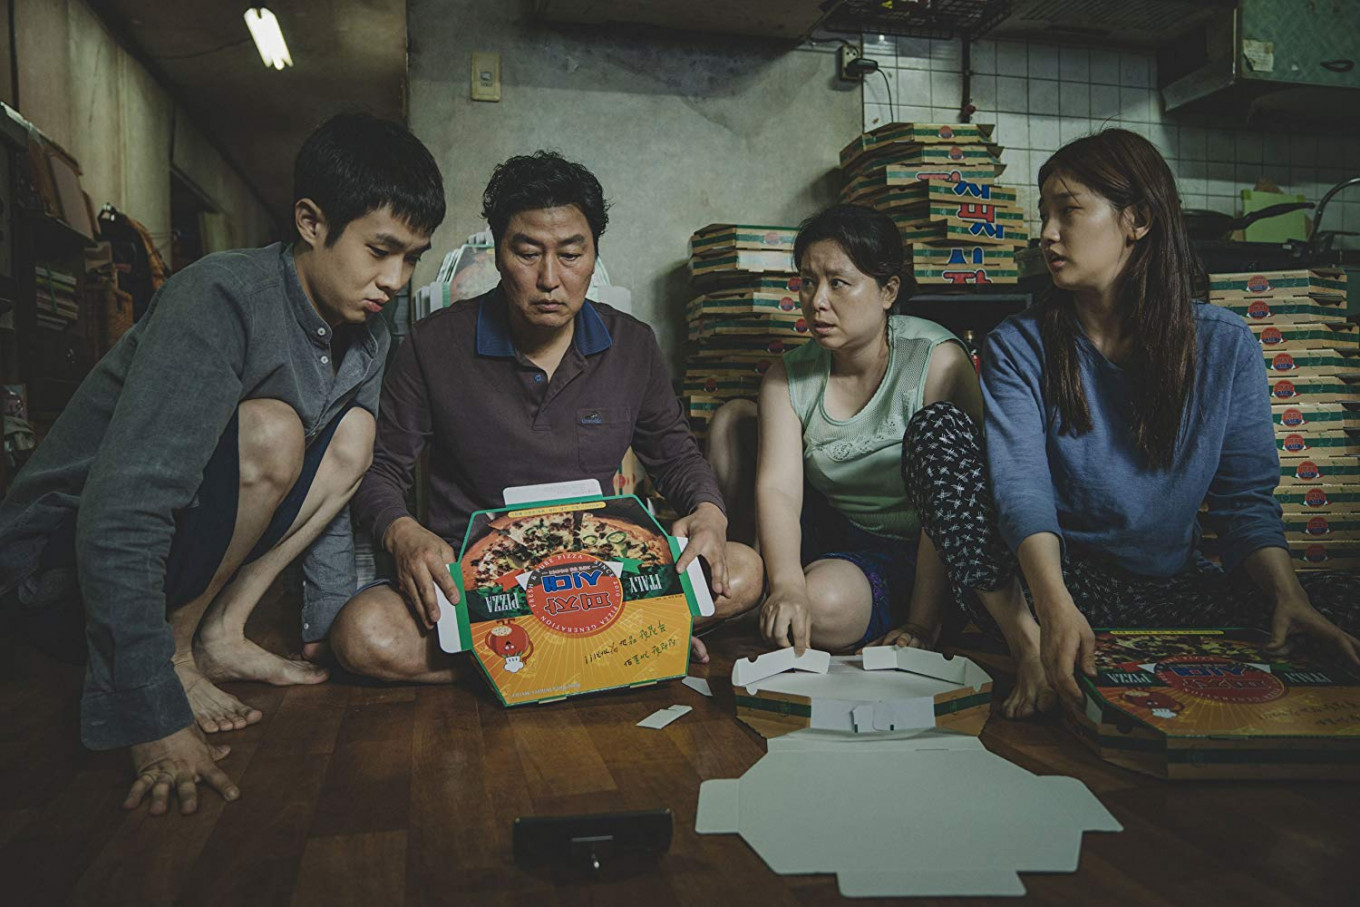 'Parasite' succeeds in mixing laughs with thrills